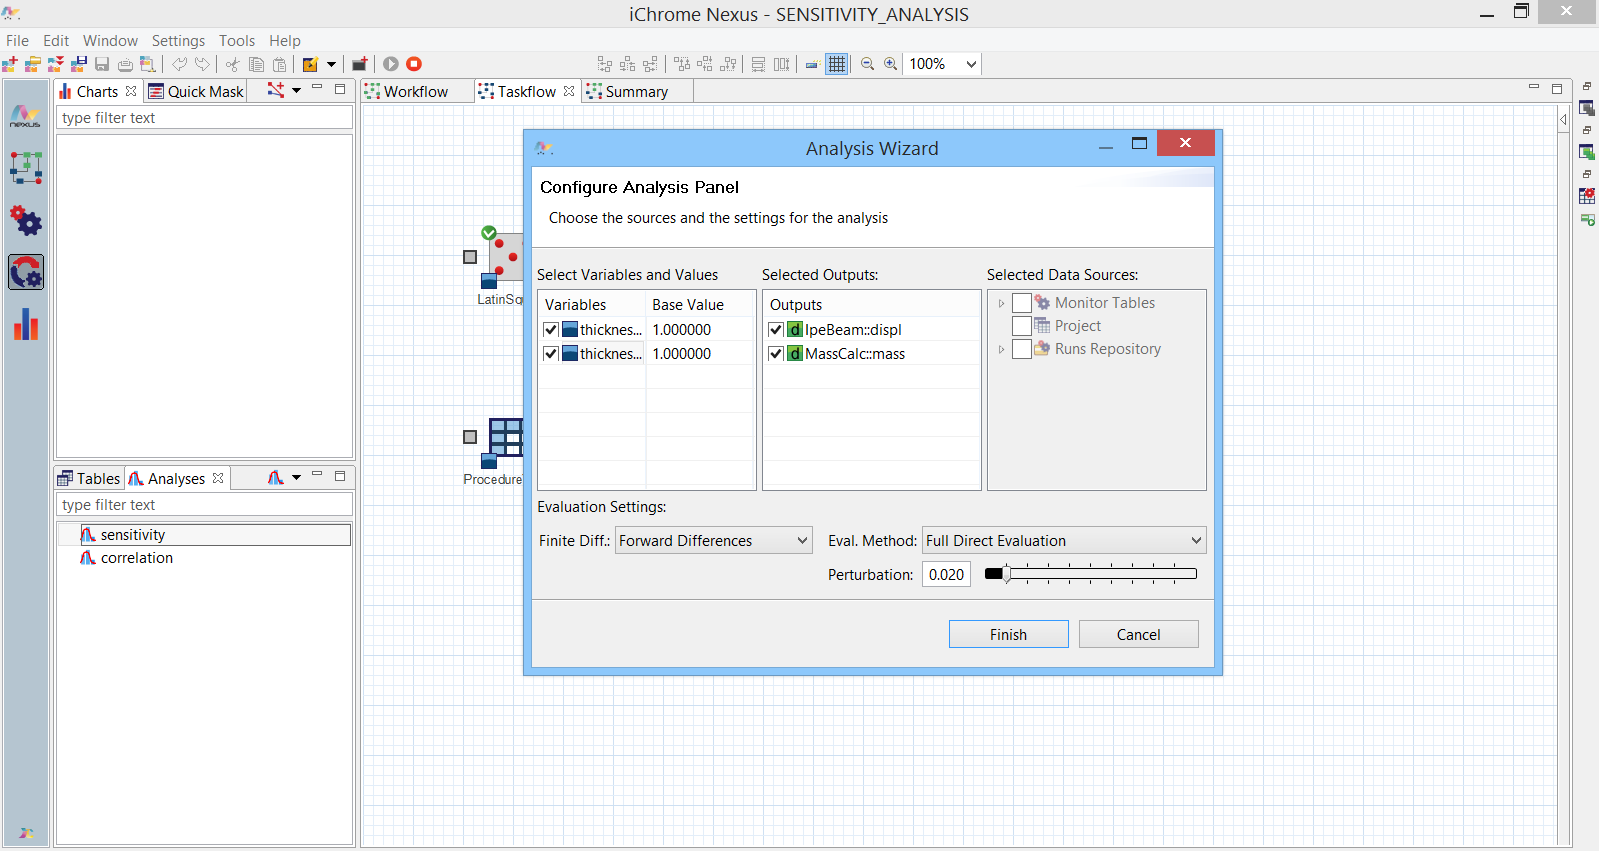 Sensitivity analysis tool in Nexus Design Explorer